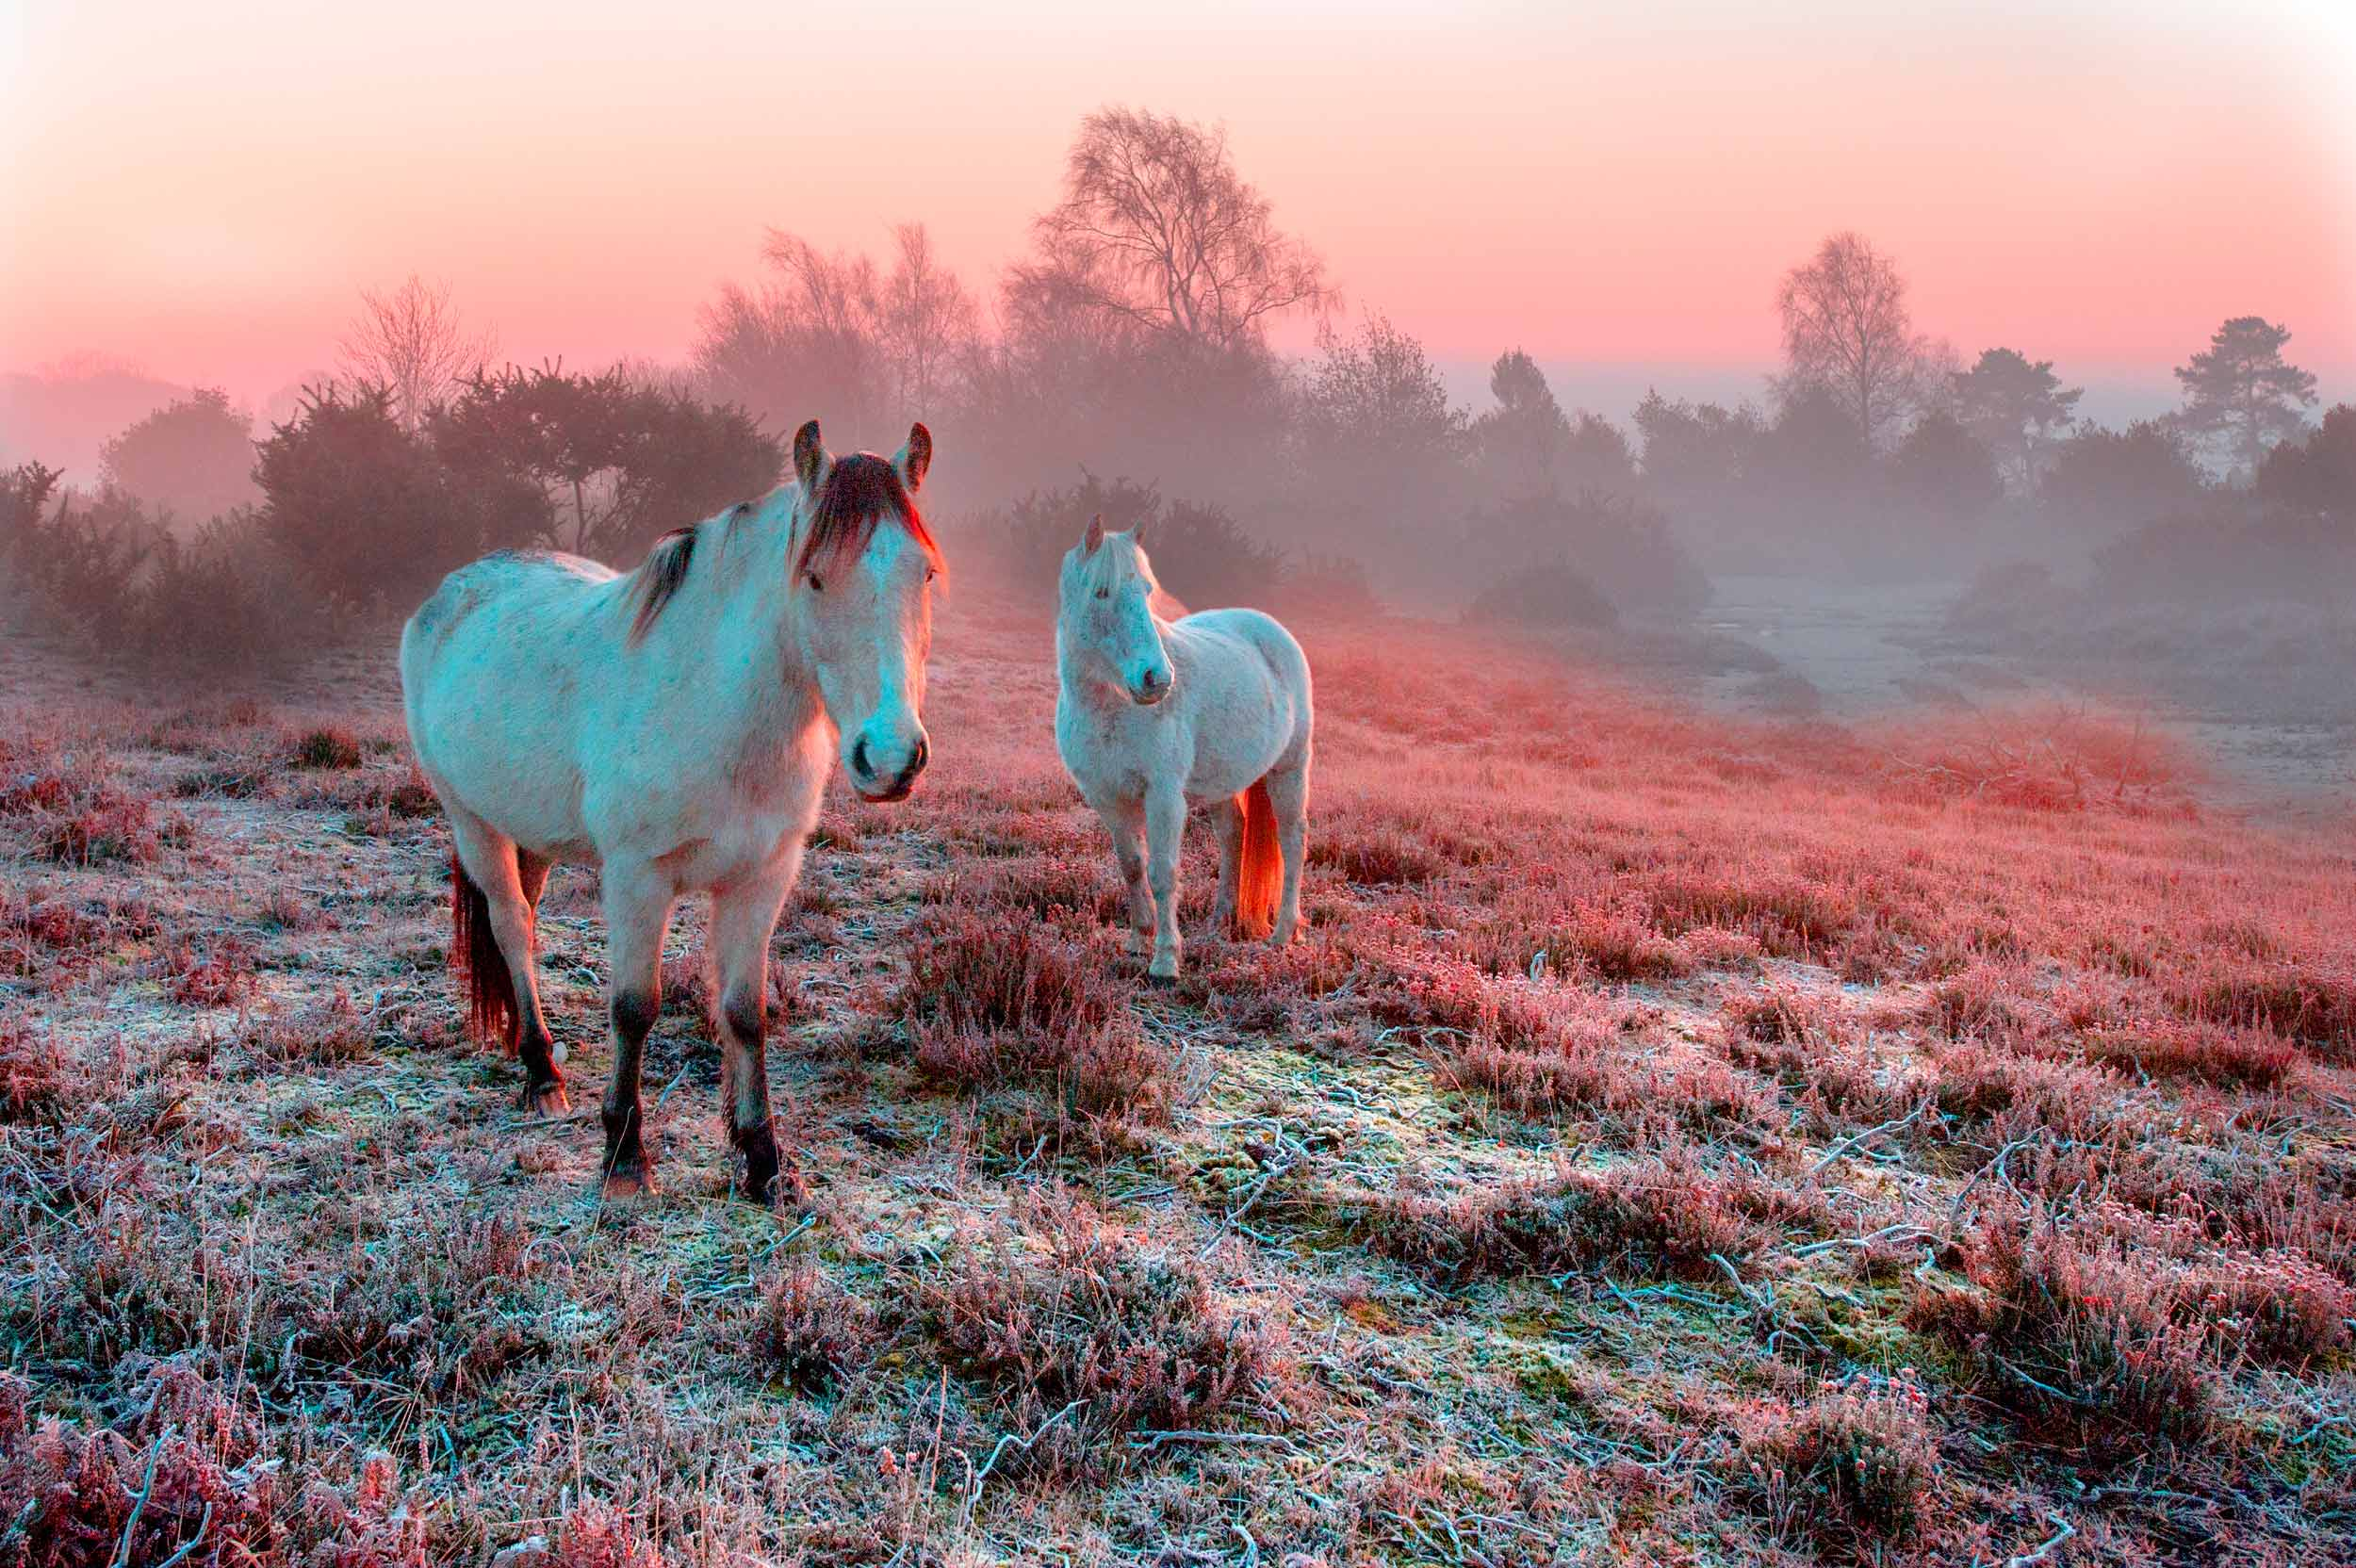 New Forest ponies  (David R Thompson/Shutterstock)